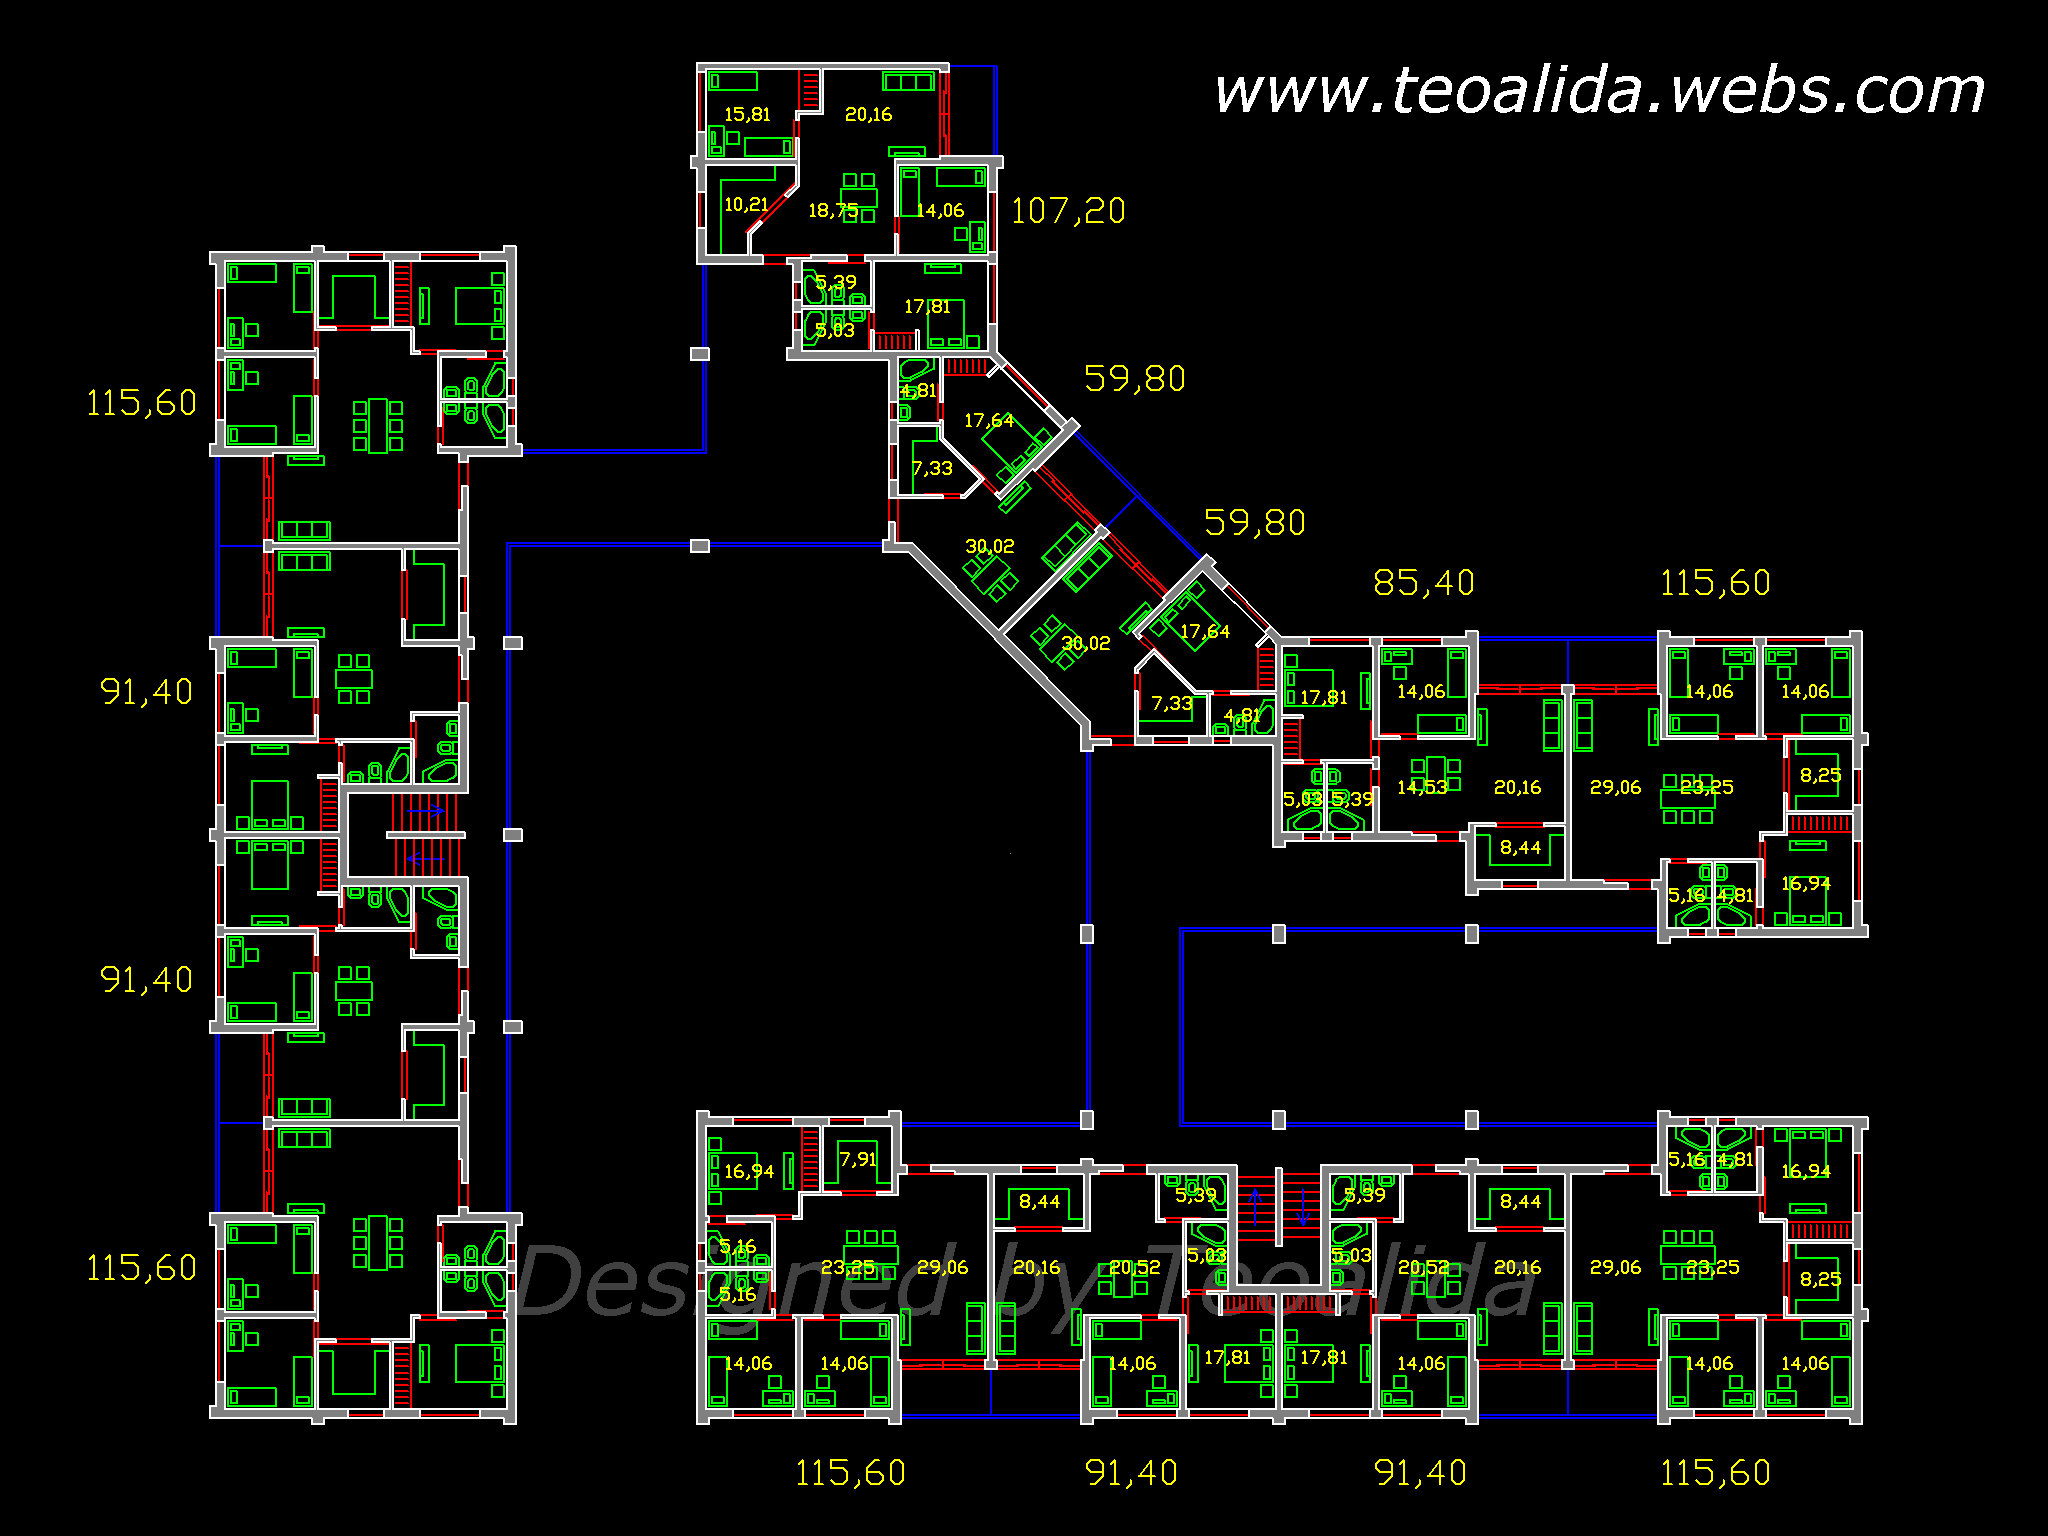 Architecture housing design 2008 2015 teoalida website Floor plan design website